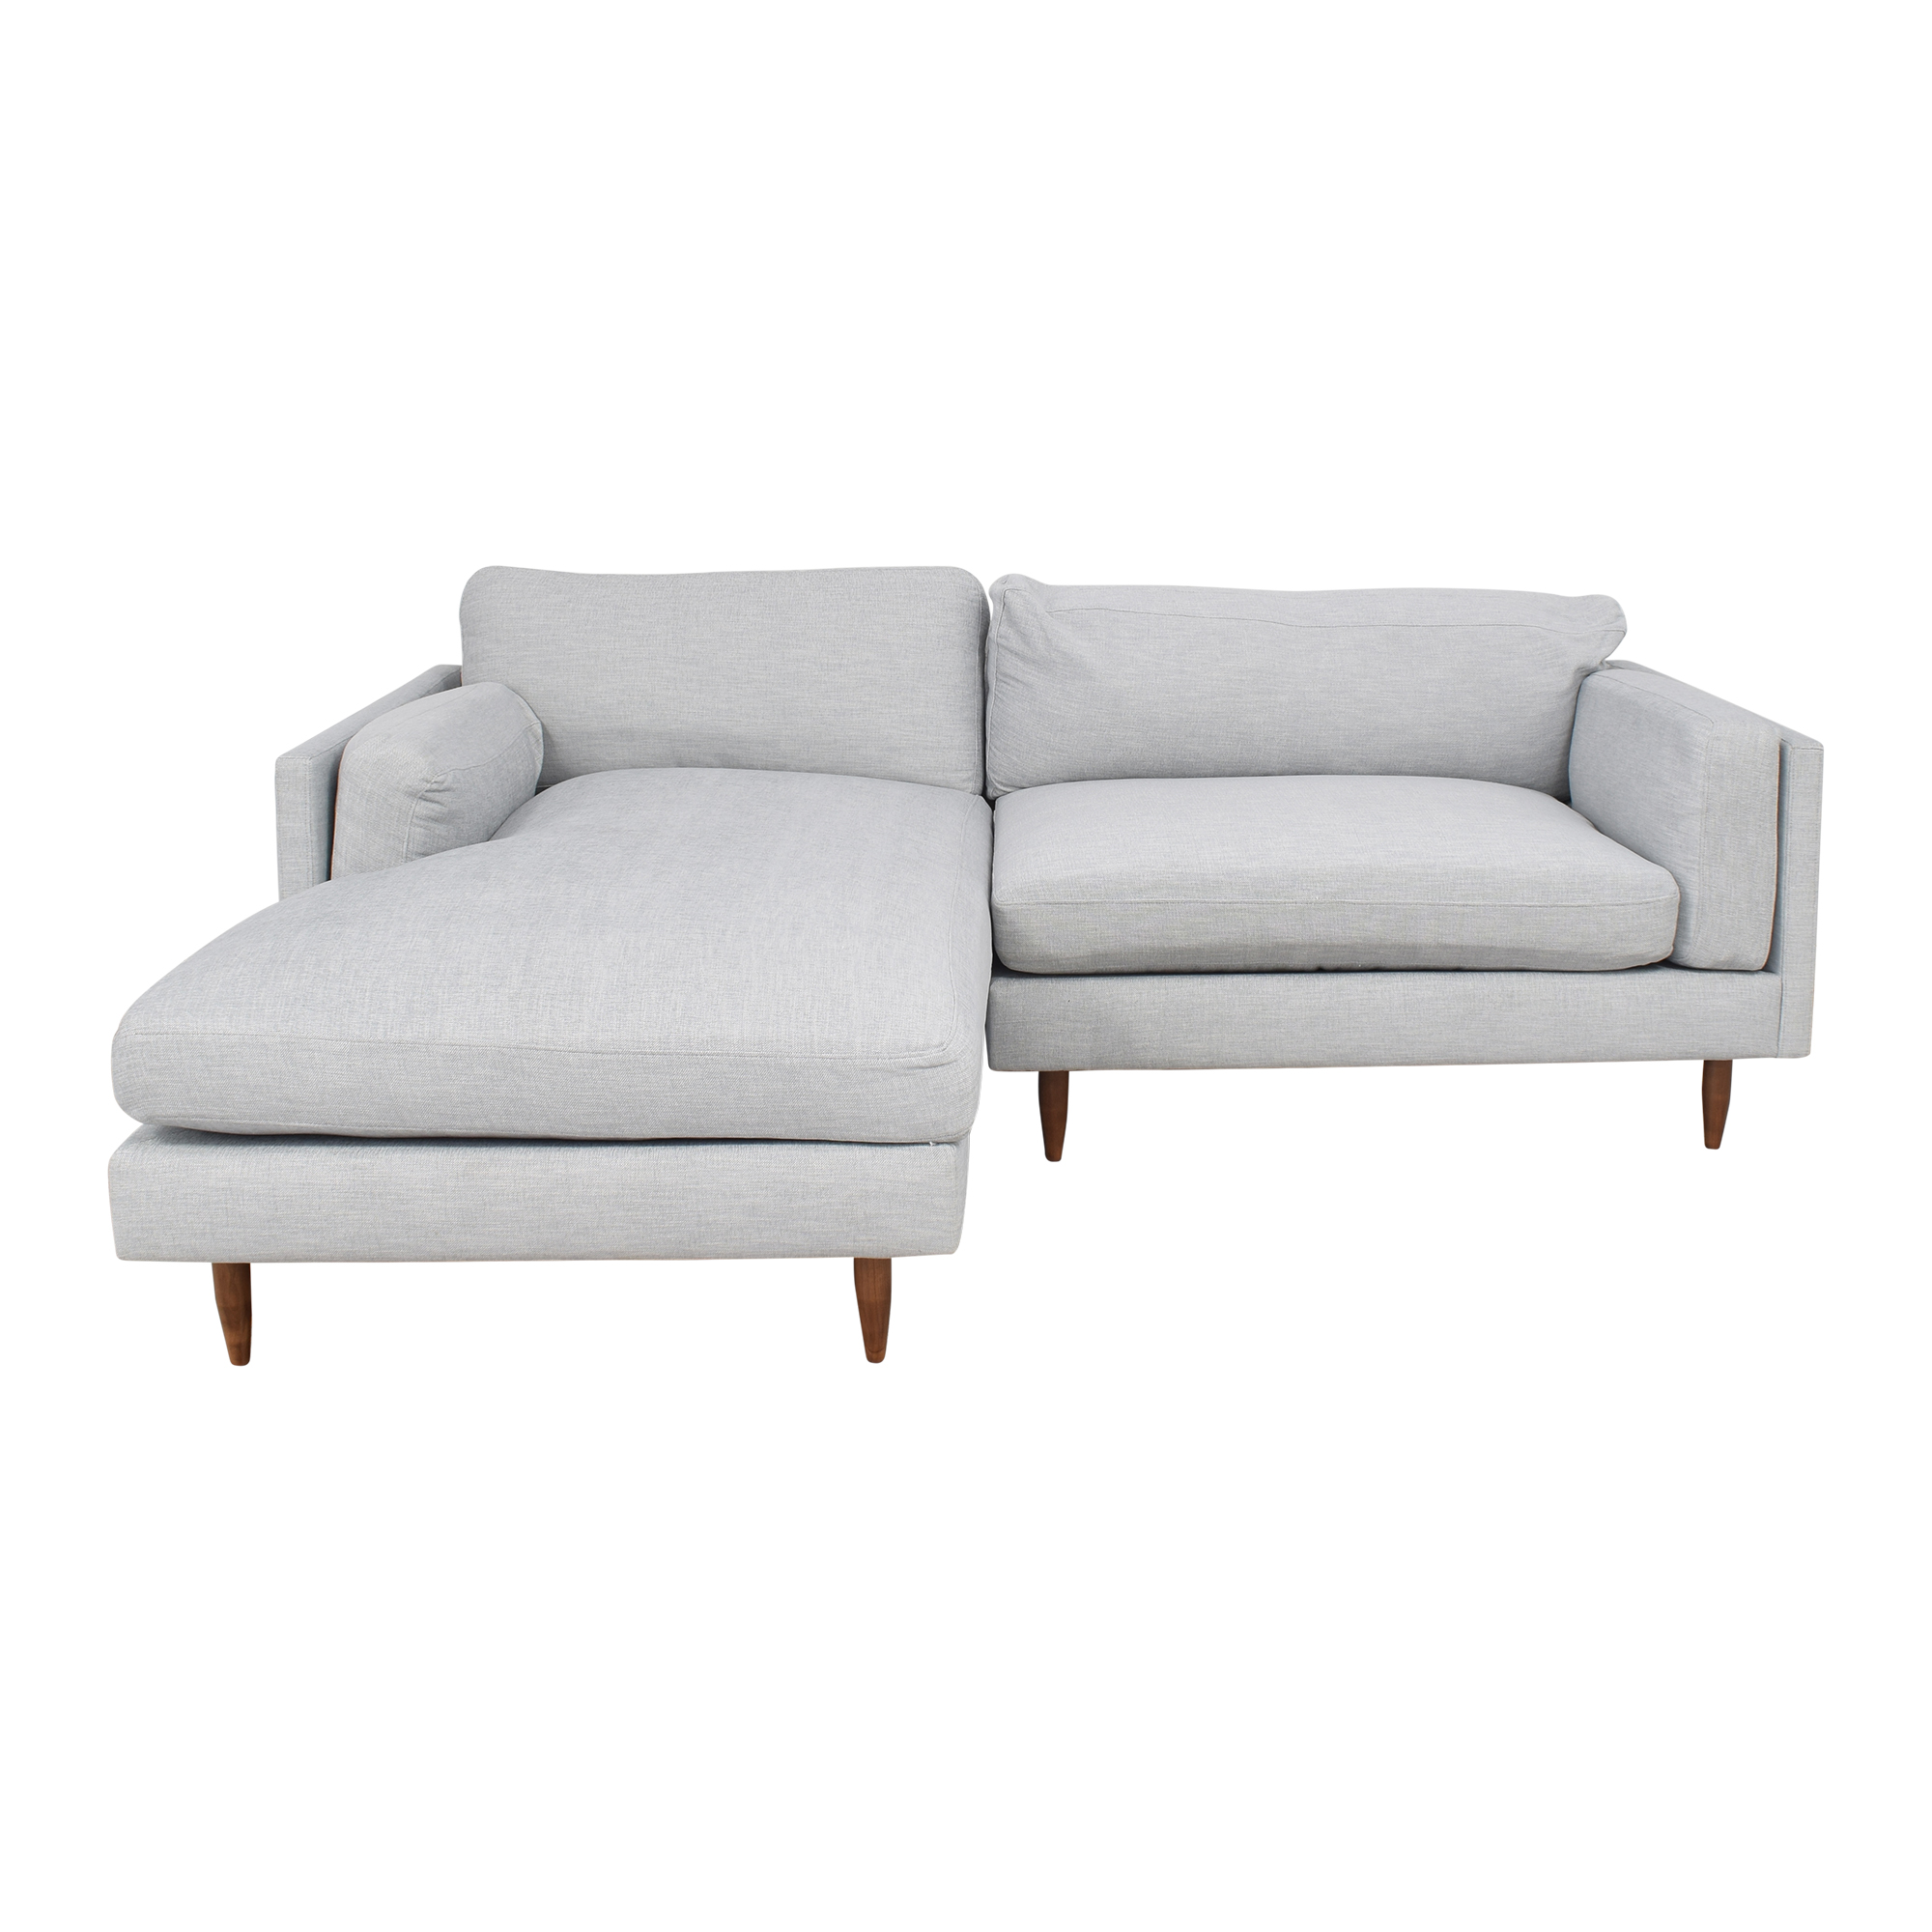 BenchMade Modern BenchMade Modern Skinny Fat Sofa With Chaise discount